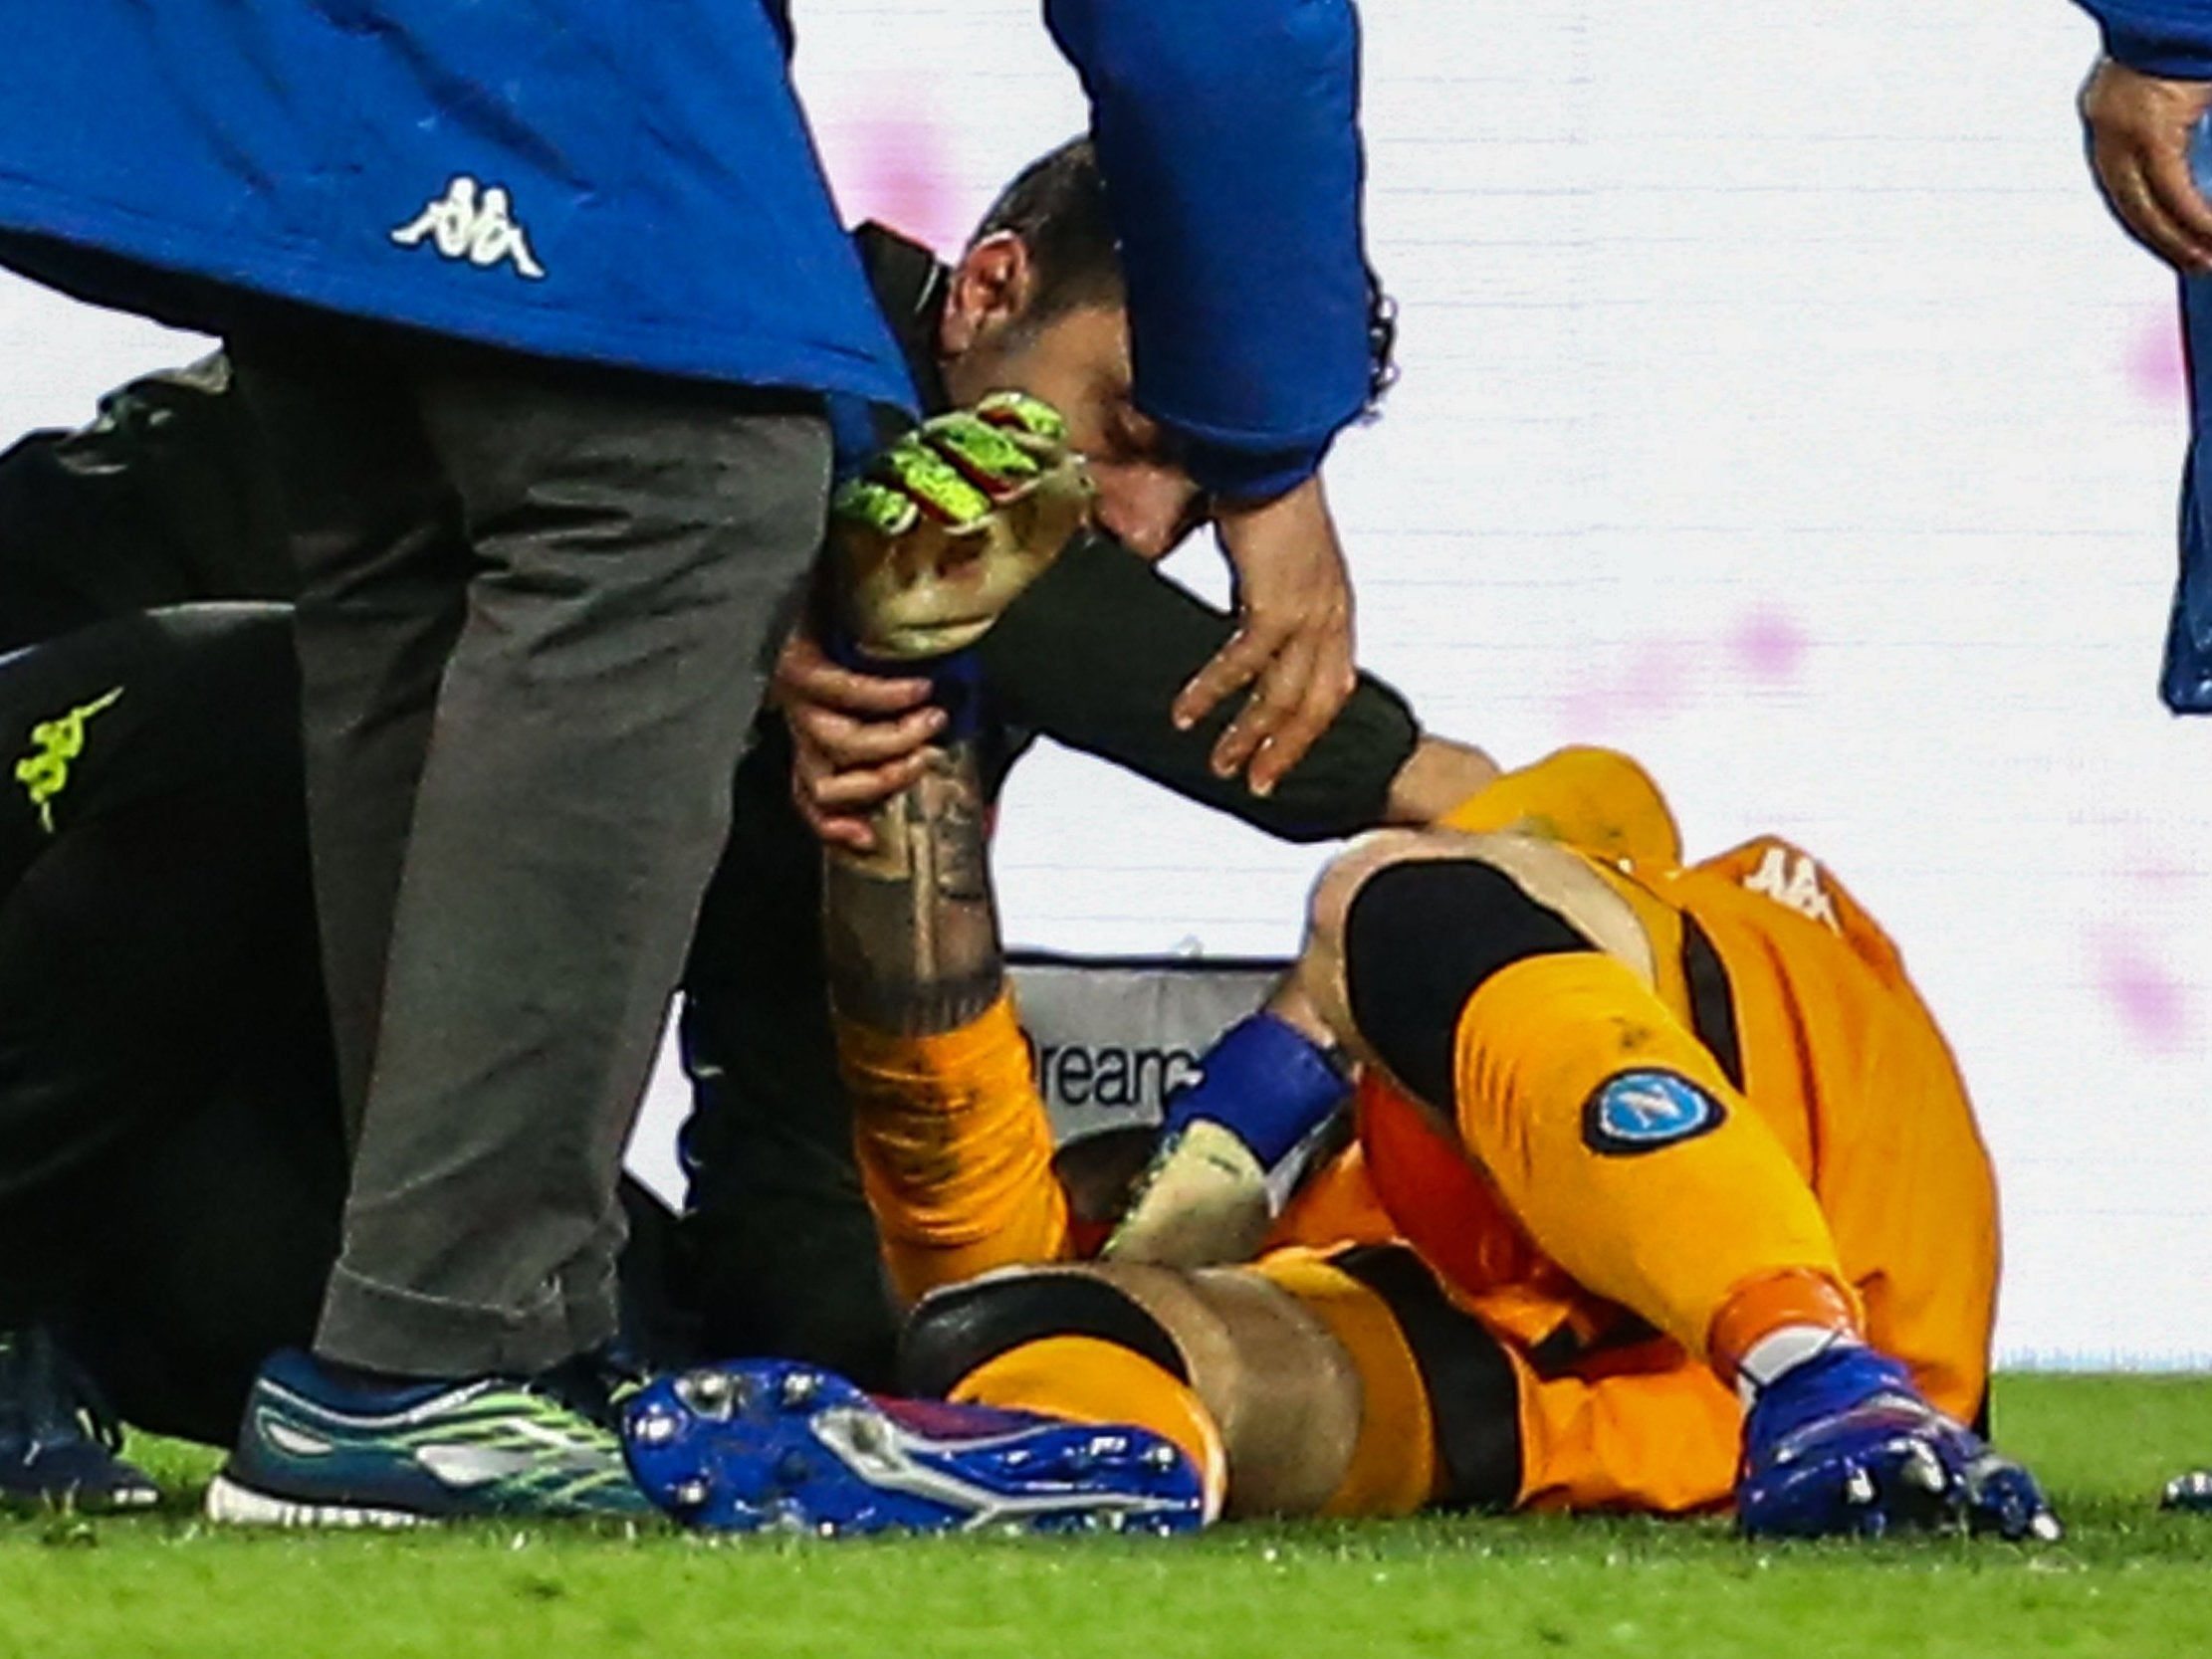 David Ospina: Brain injury charity 'deeply shocked and appalled' at football's flouting of concussion rules